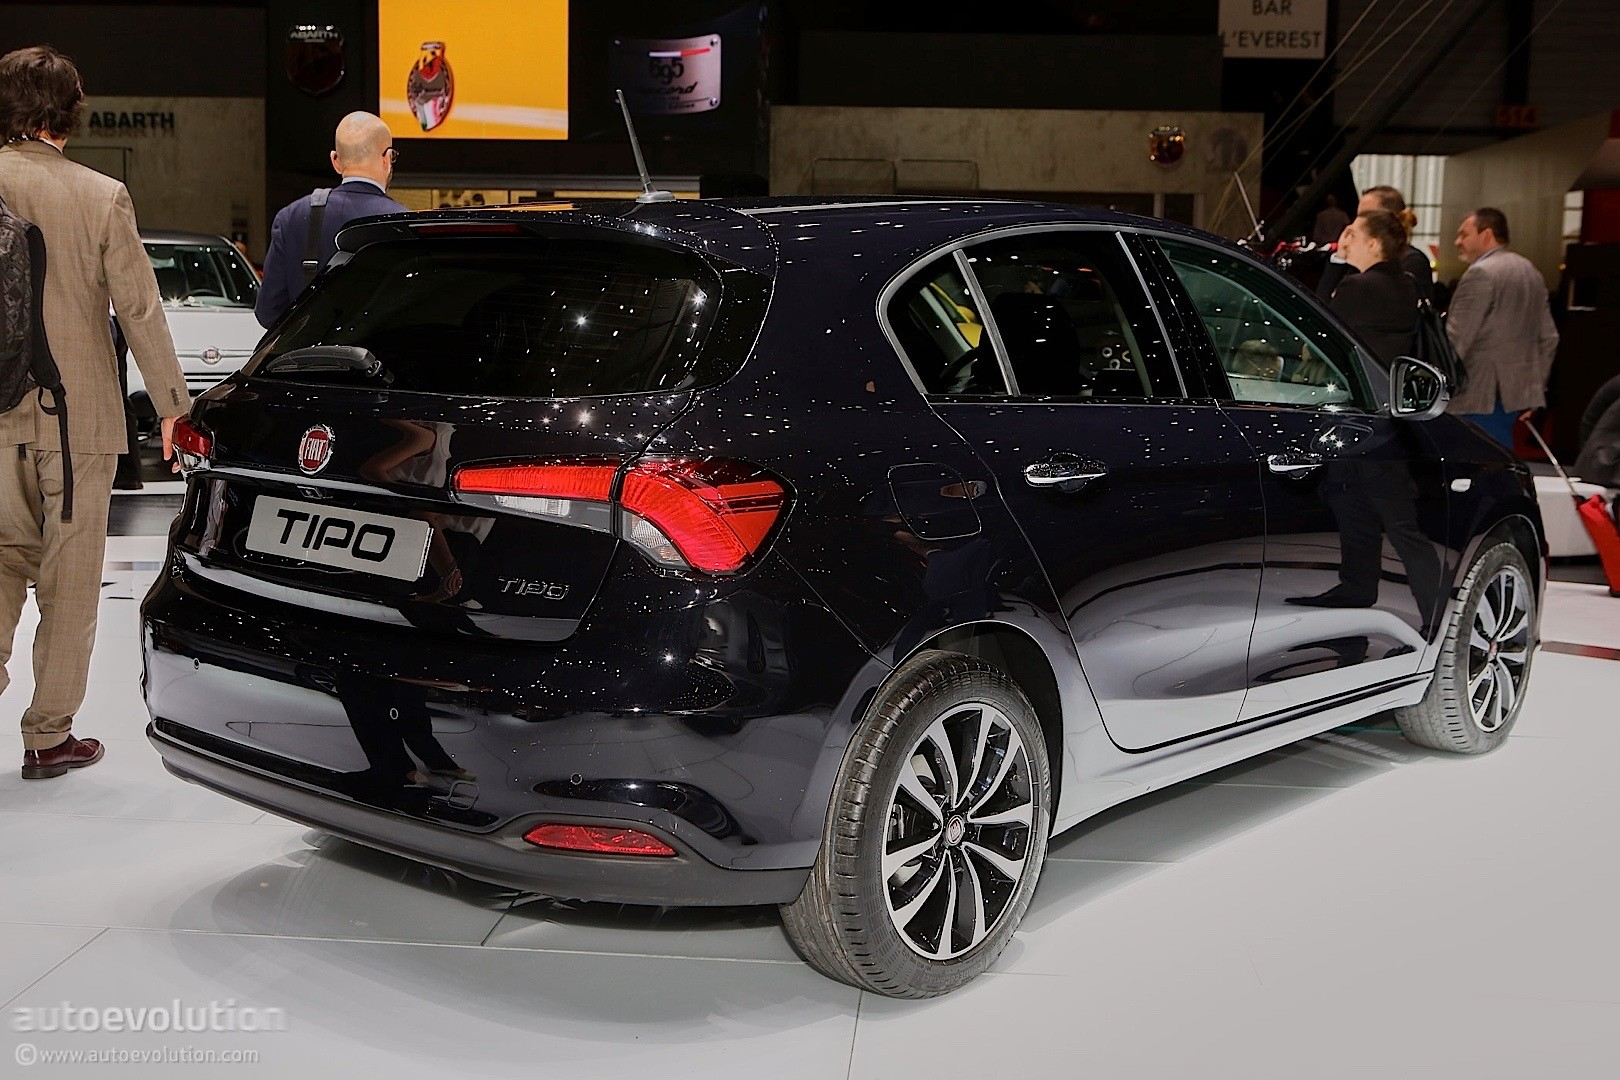 2016 fiat tipo hatchback priced at 12 750 in italy station wagon at 15 900 autoevolution. Black Bedroom Furniture Sets. Home Design Ideas